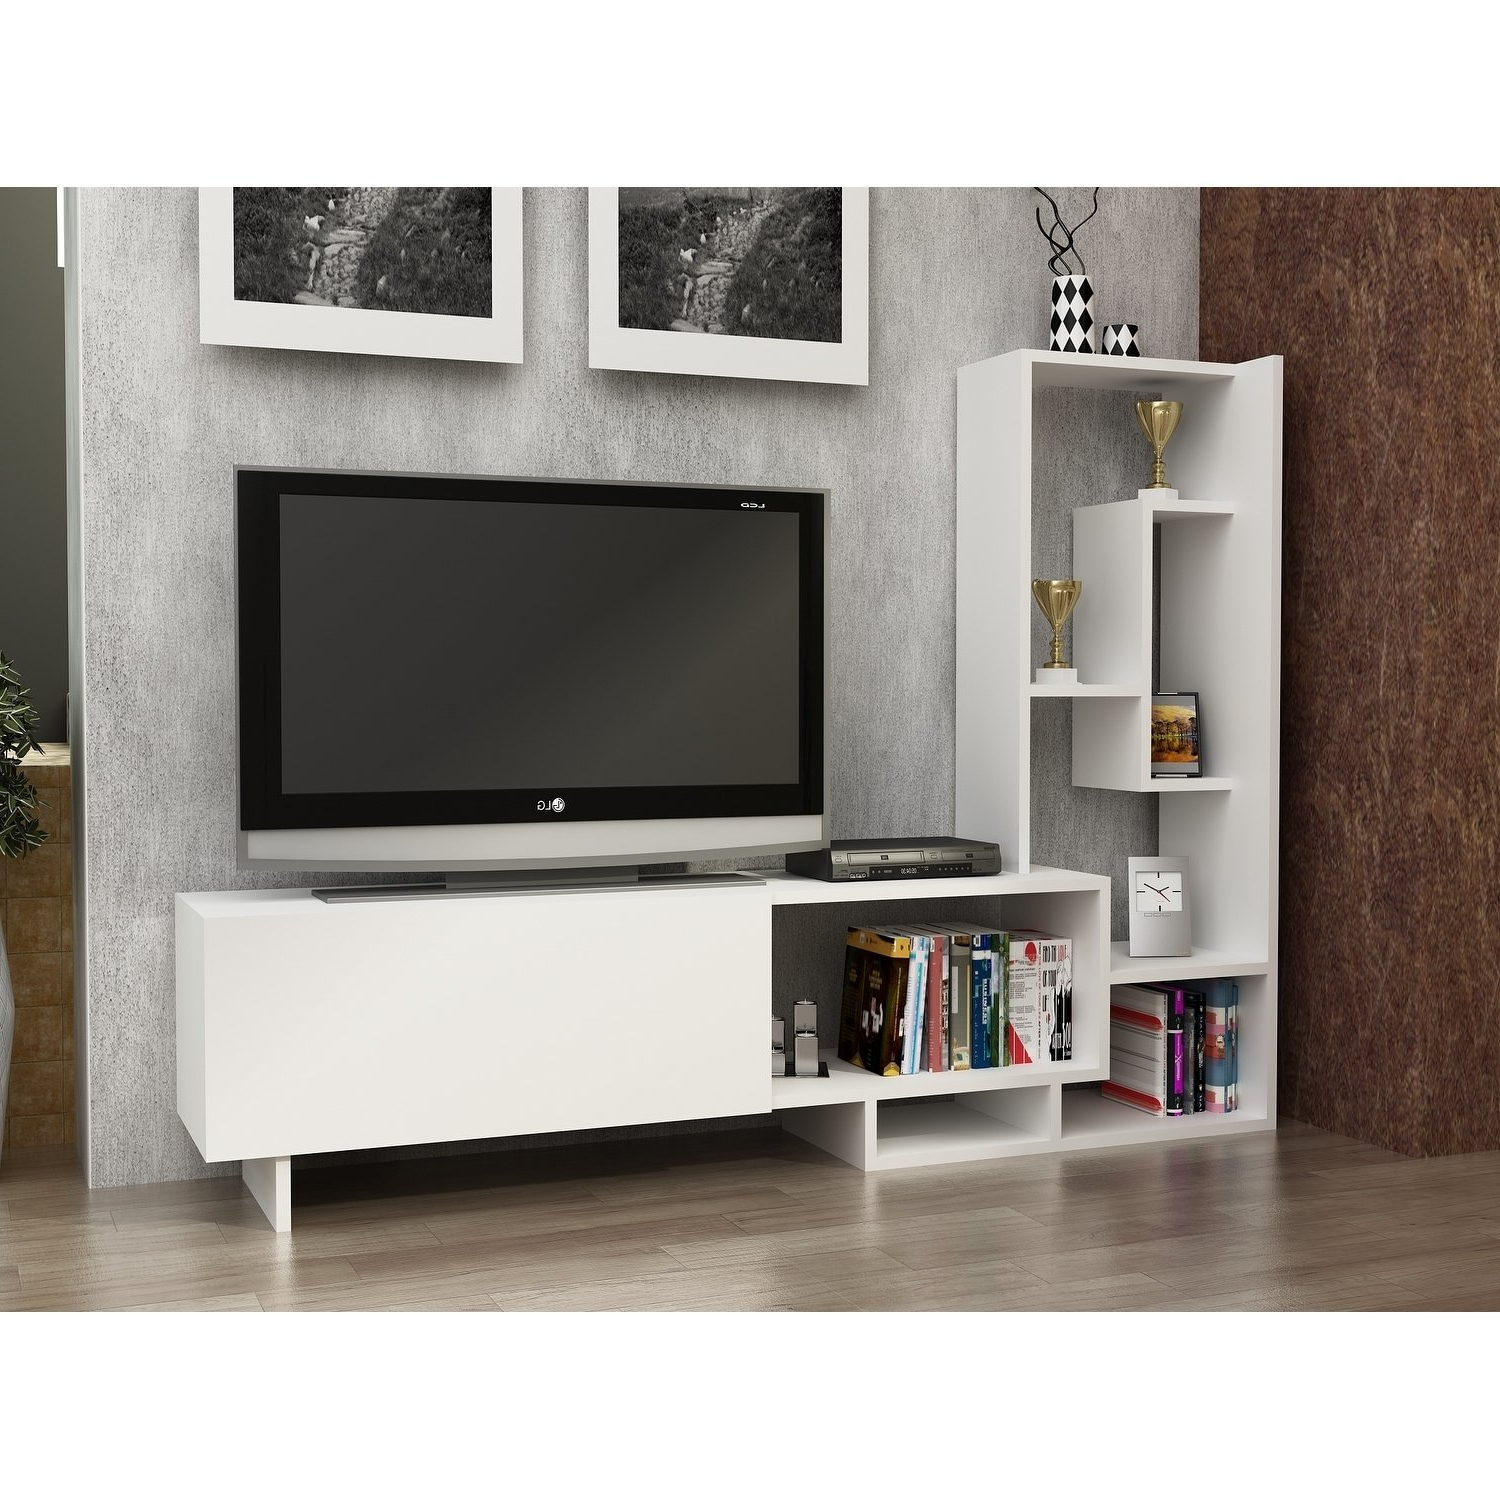 Shop Decorotika Pegai White Wood 60 Inch Tv Stand With Bookshelves Within Canyon 54 Inch Tv Stands (View 10 of 20)